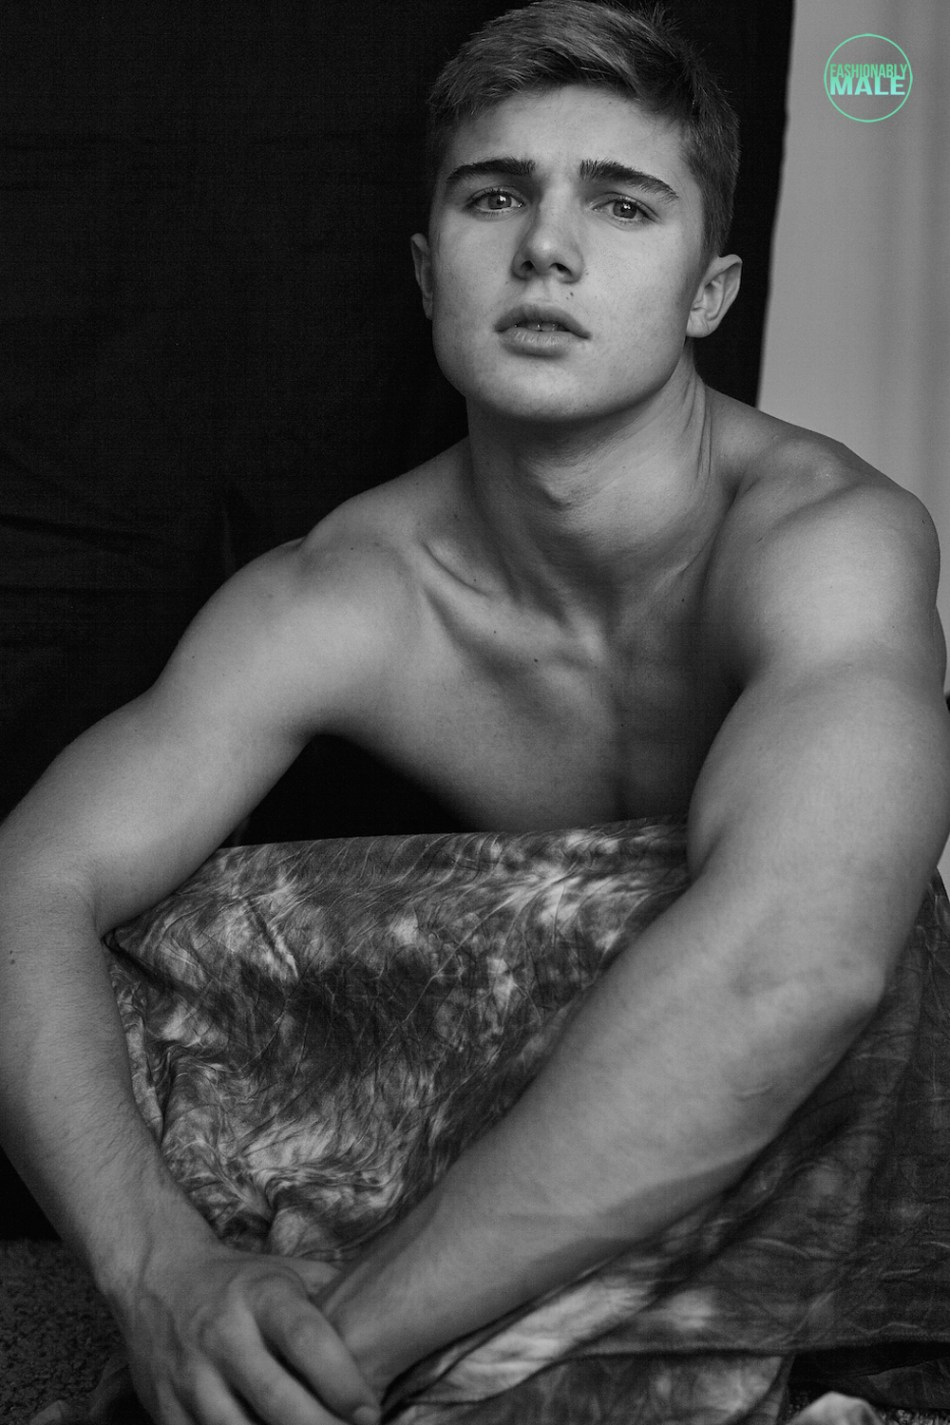 Freddie Pearson by José Pope for Fashionably Male11